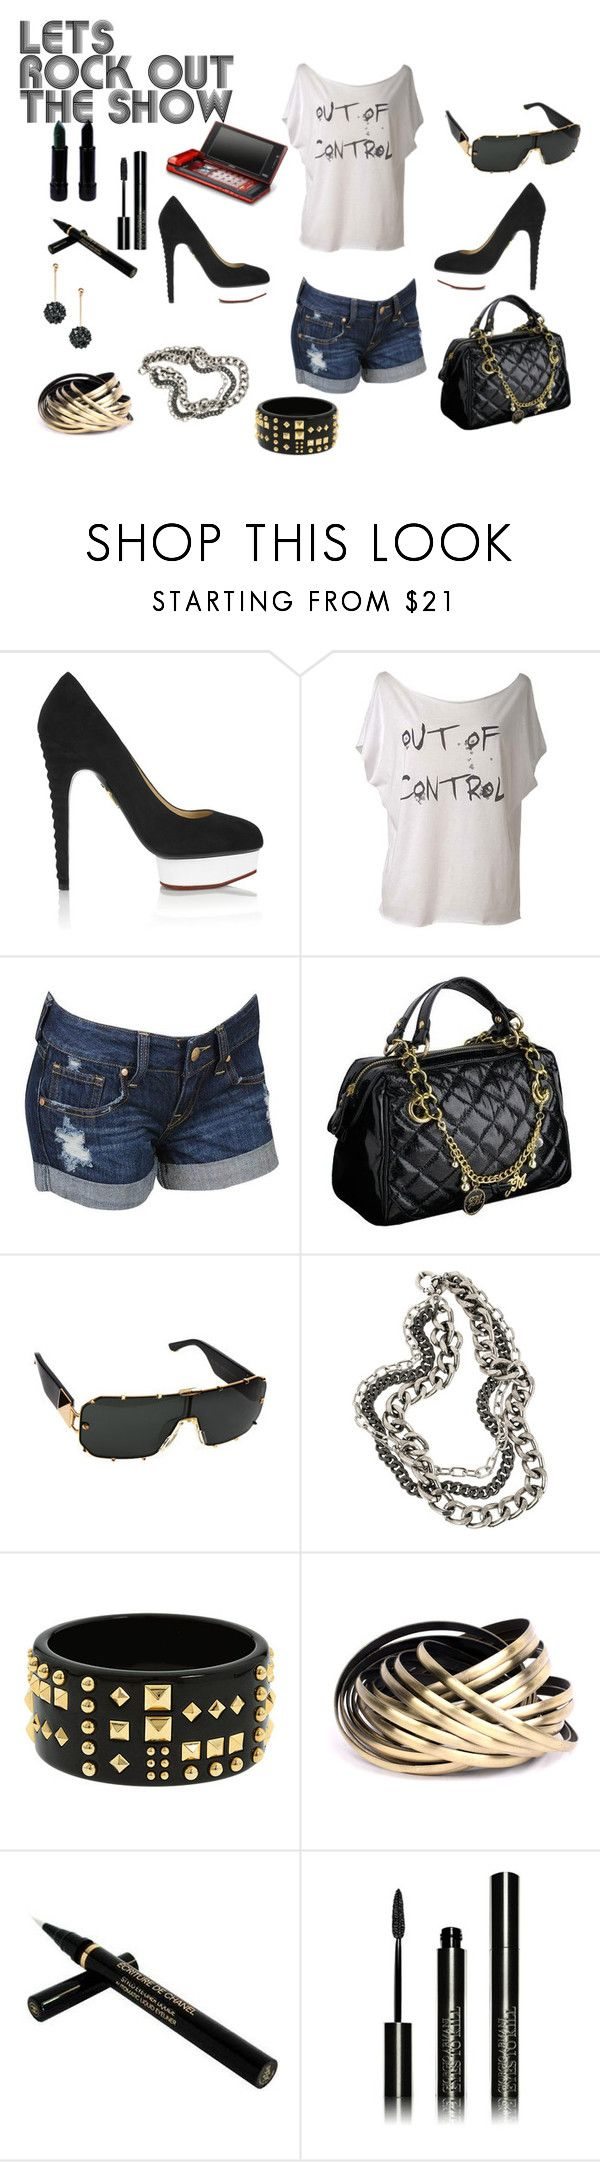 """""""Rocker Chick"""" by fashionmommie11 ❤ liked on Polyvore featuring Charlotte Olympia, Forever 21, Star by Julien Macdonald, Linda Farrow, Giles & Brother, ABS by Allen Schwartz, ASOS, Rockstar Sushi, Chanel and Giorgio Armani"""